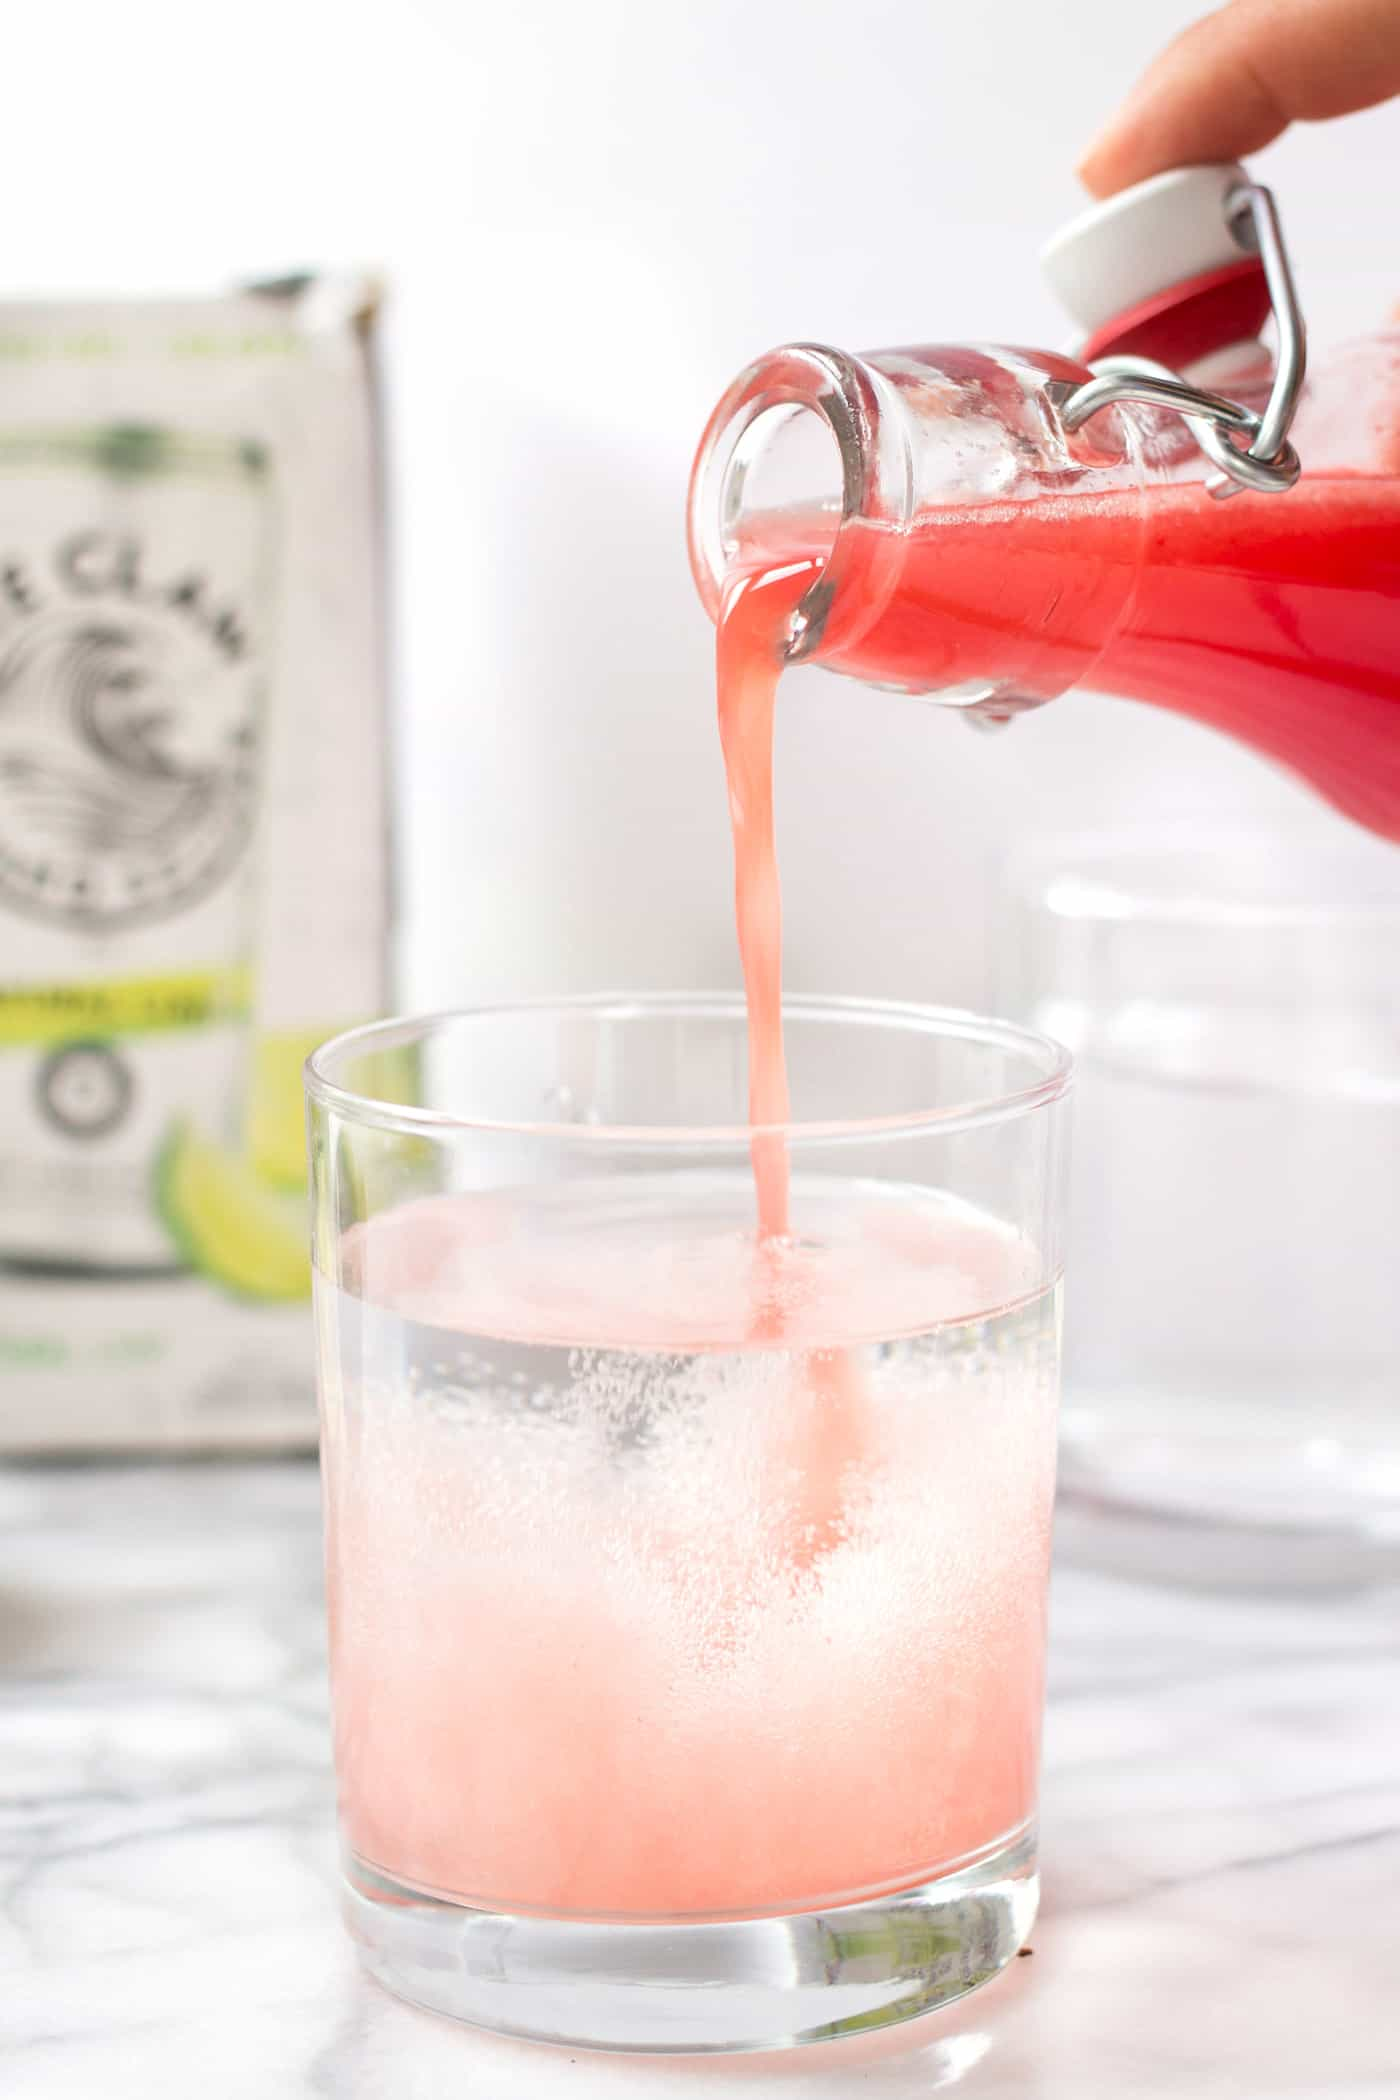 How to make healthy Watermelon Spritzers using fresh watermelon, limes + hard seltzer!